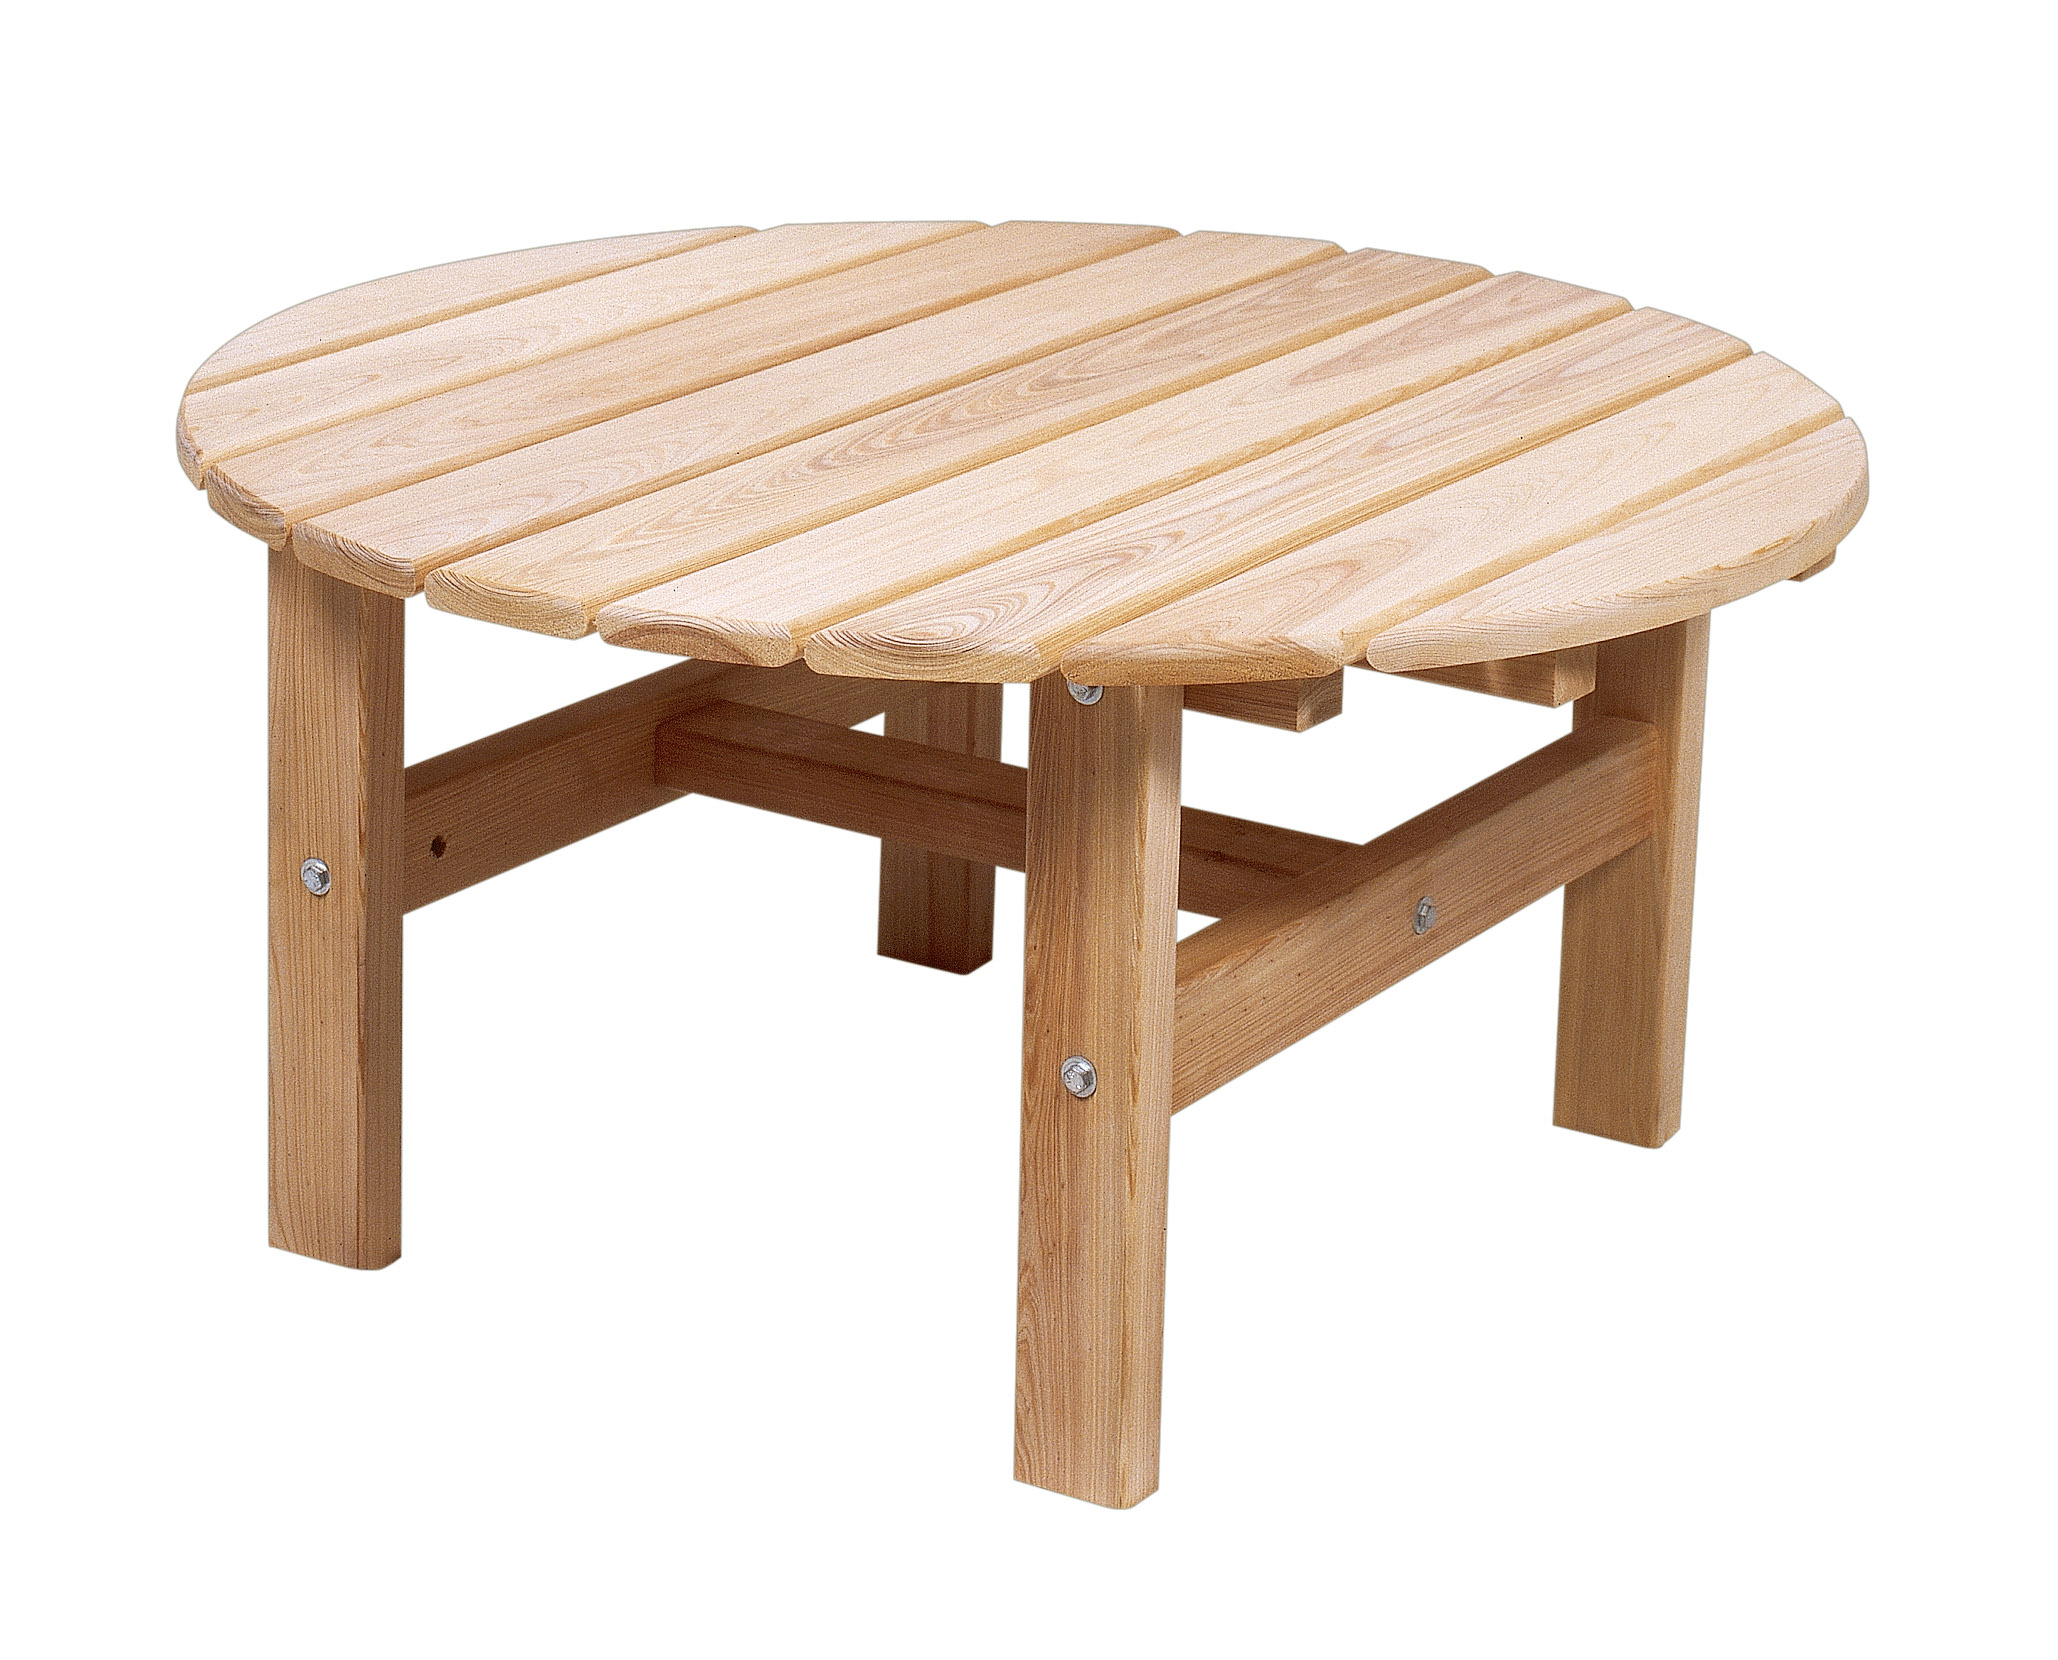 Furniture Outdoor Furniture Coffee Table 33 Inches Round Coffee Table